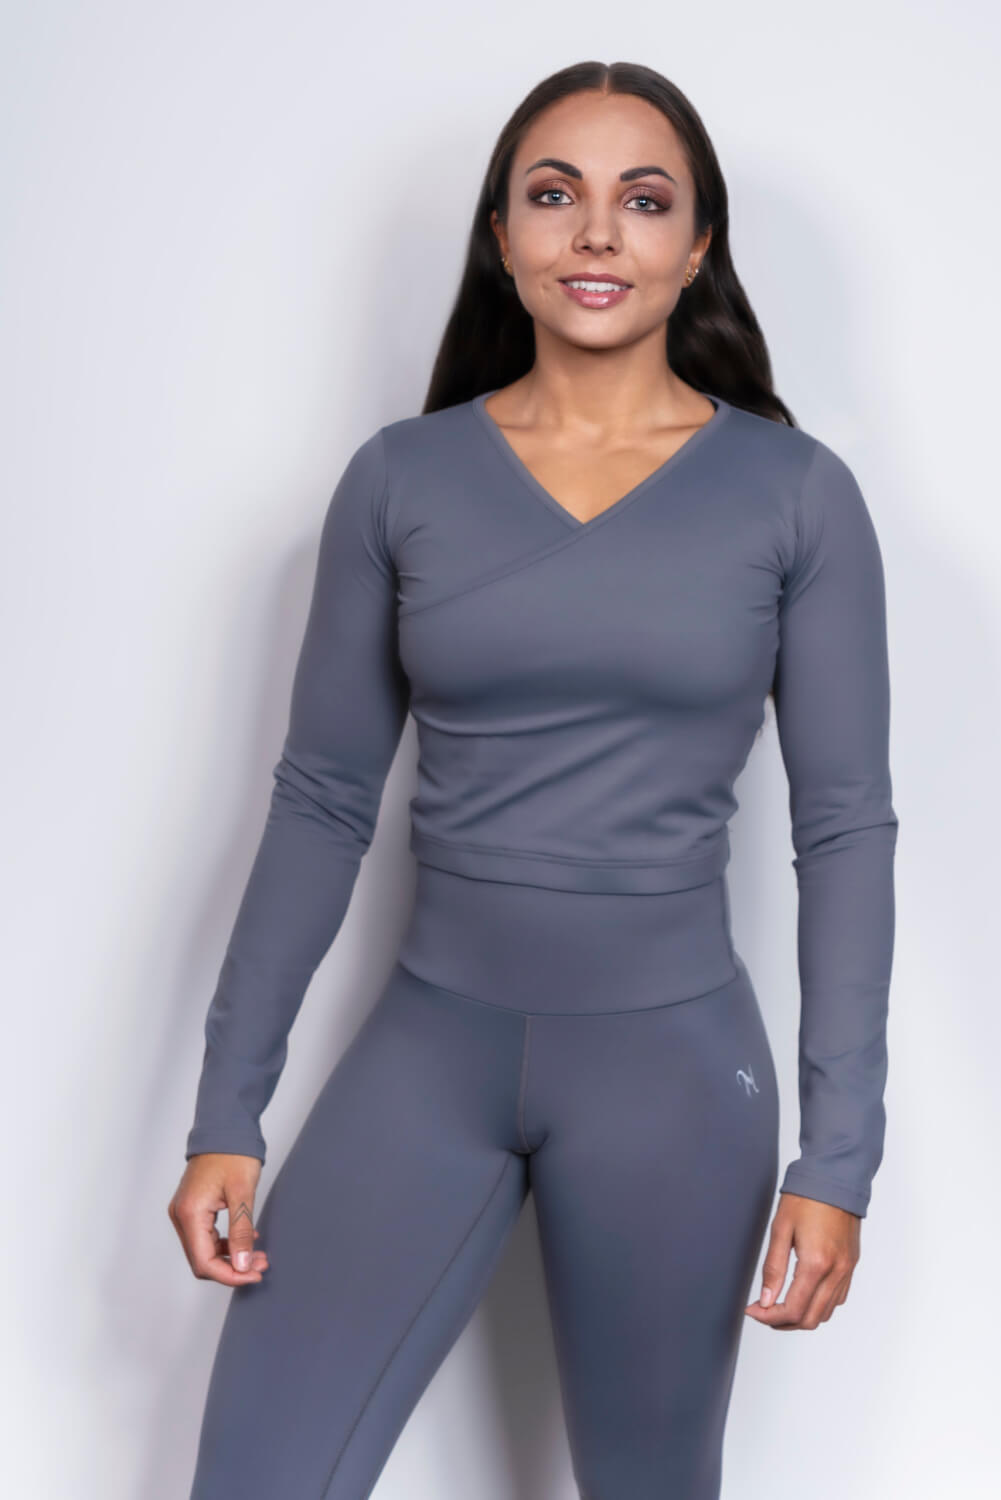 MFIT Shaper 2.0 Crop Top